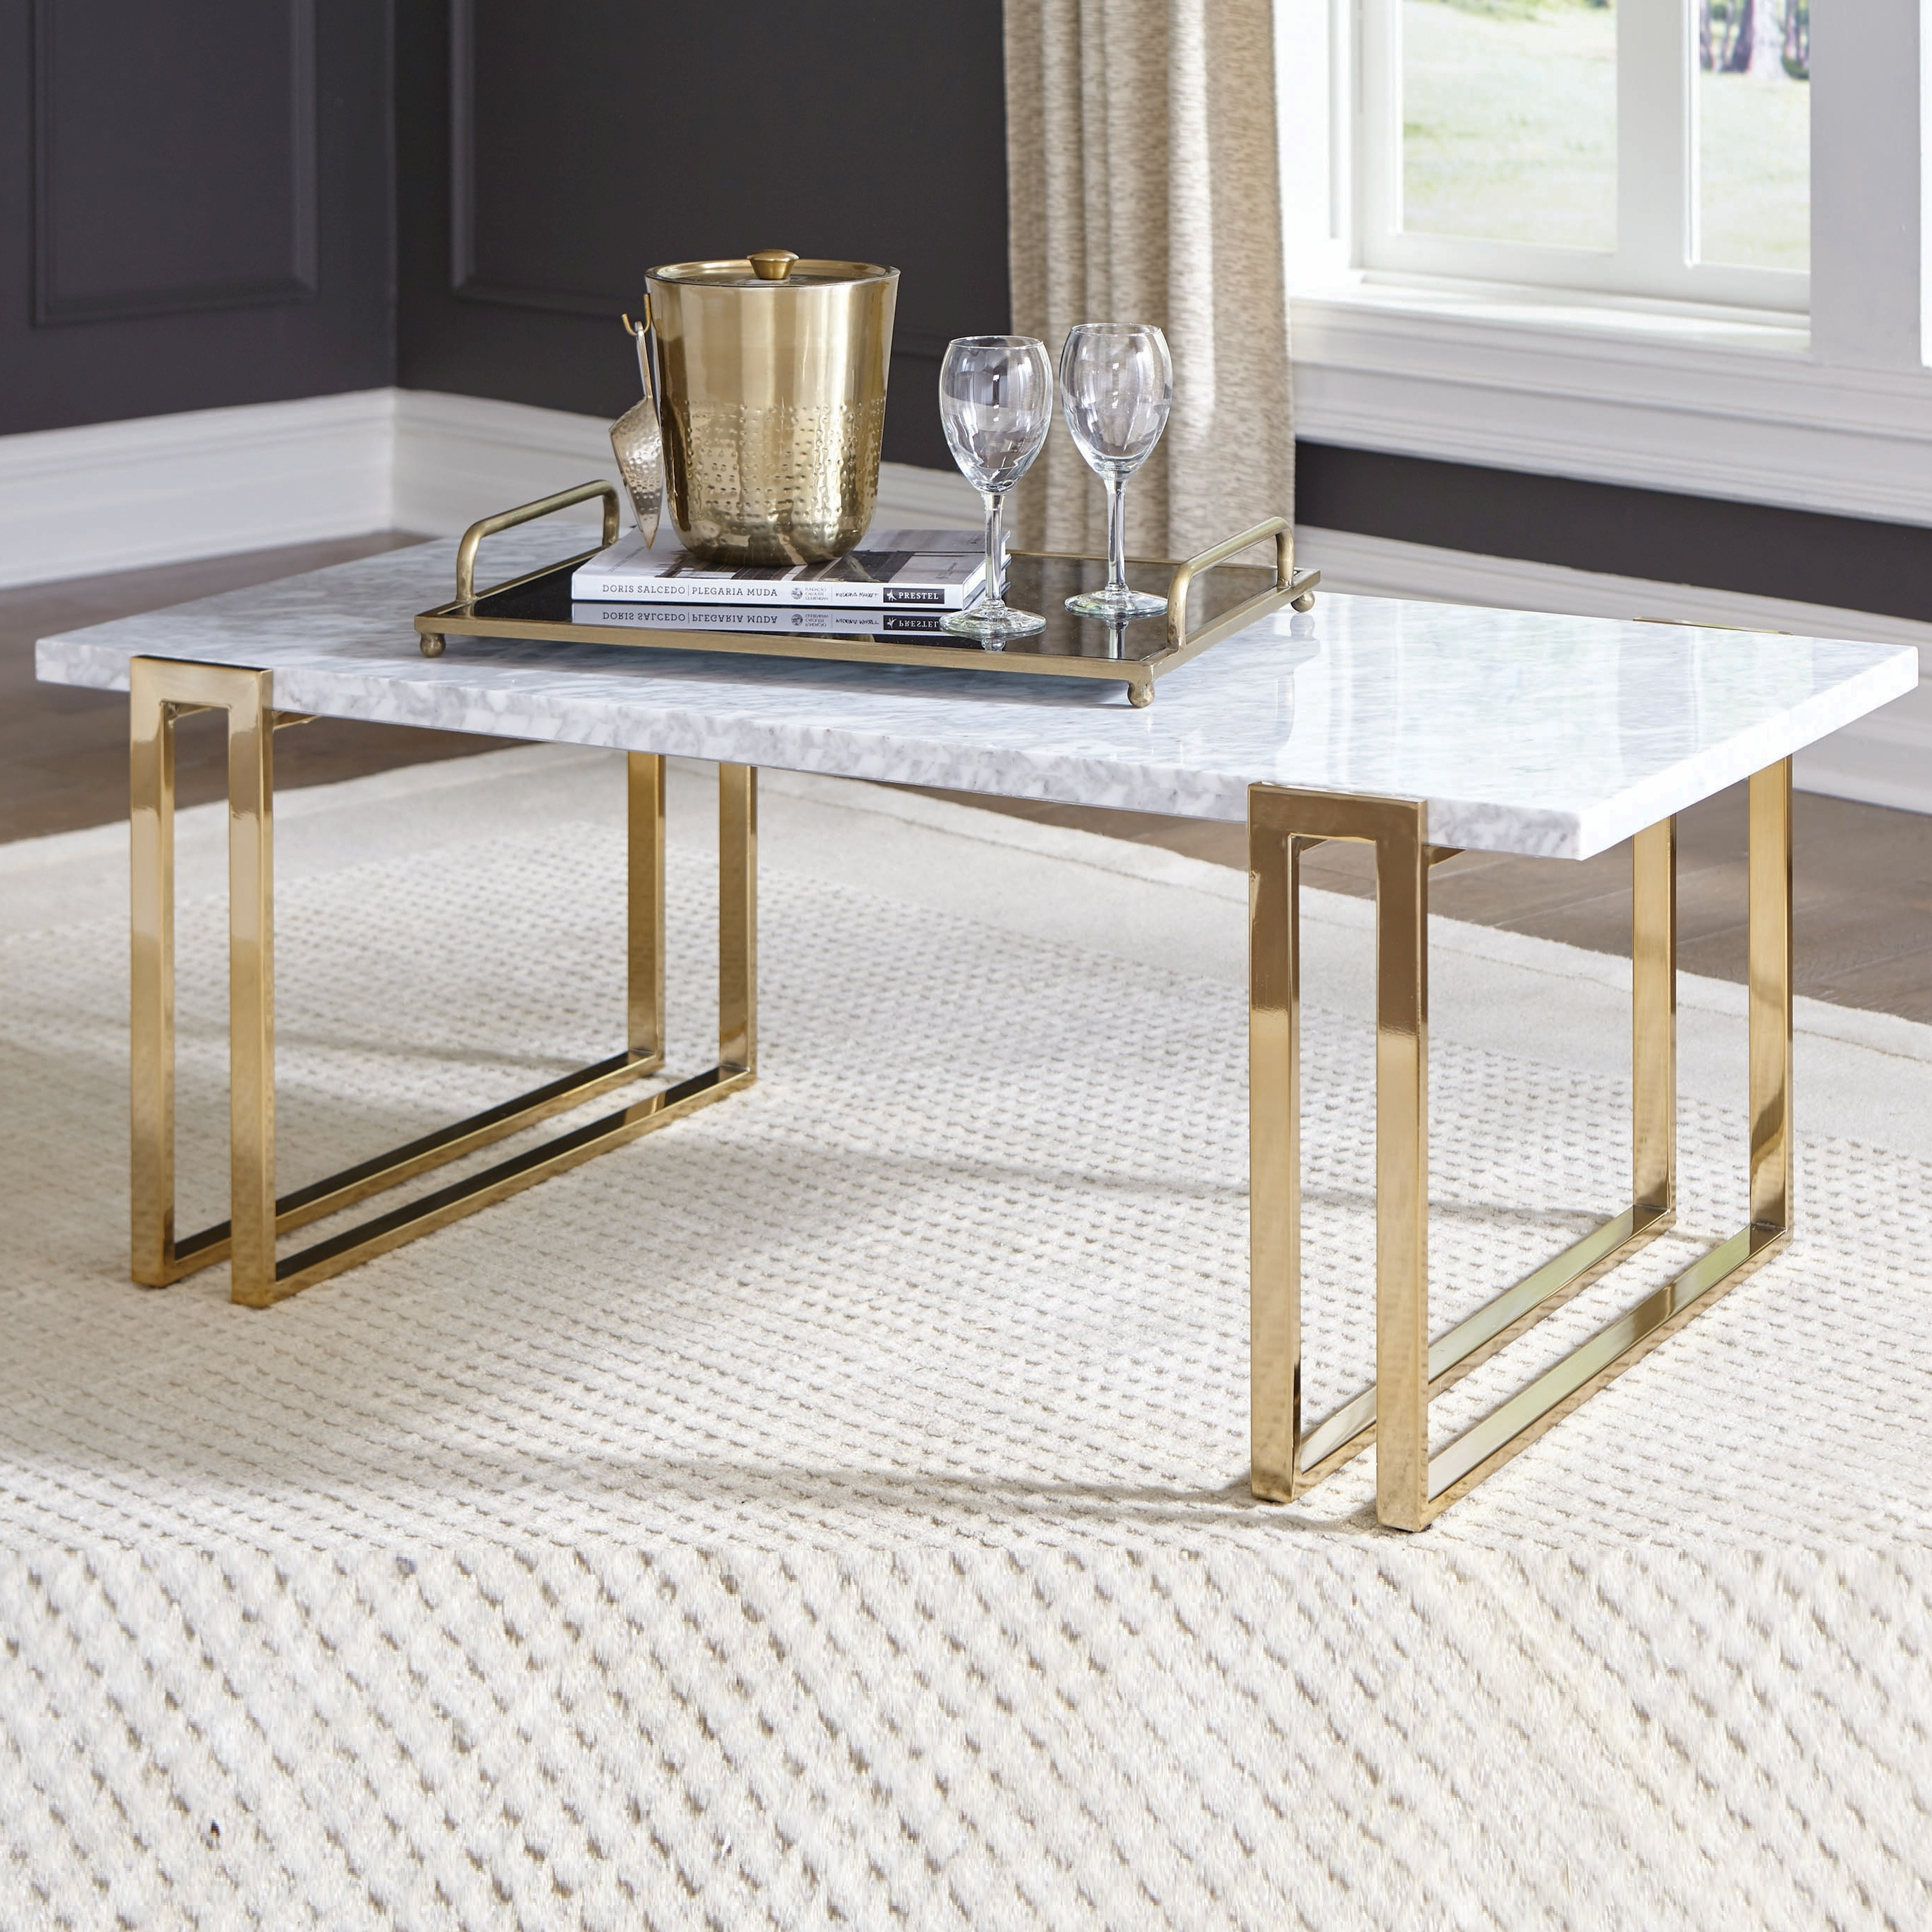 Marble Dining Table With Gold Plated Table Legs   Buy Dining ...